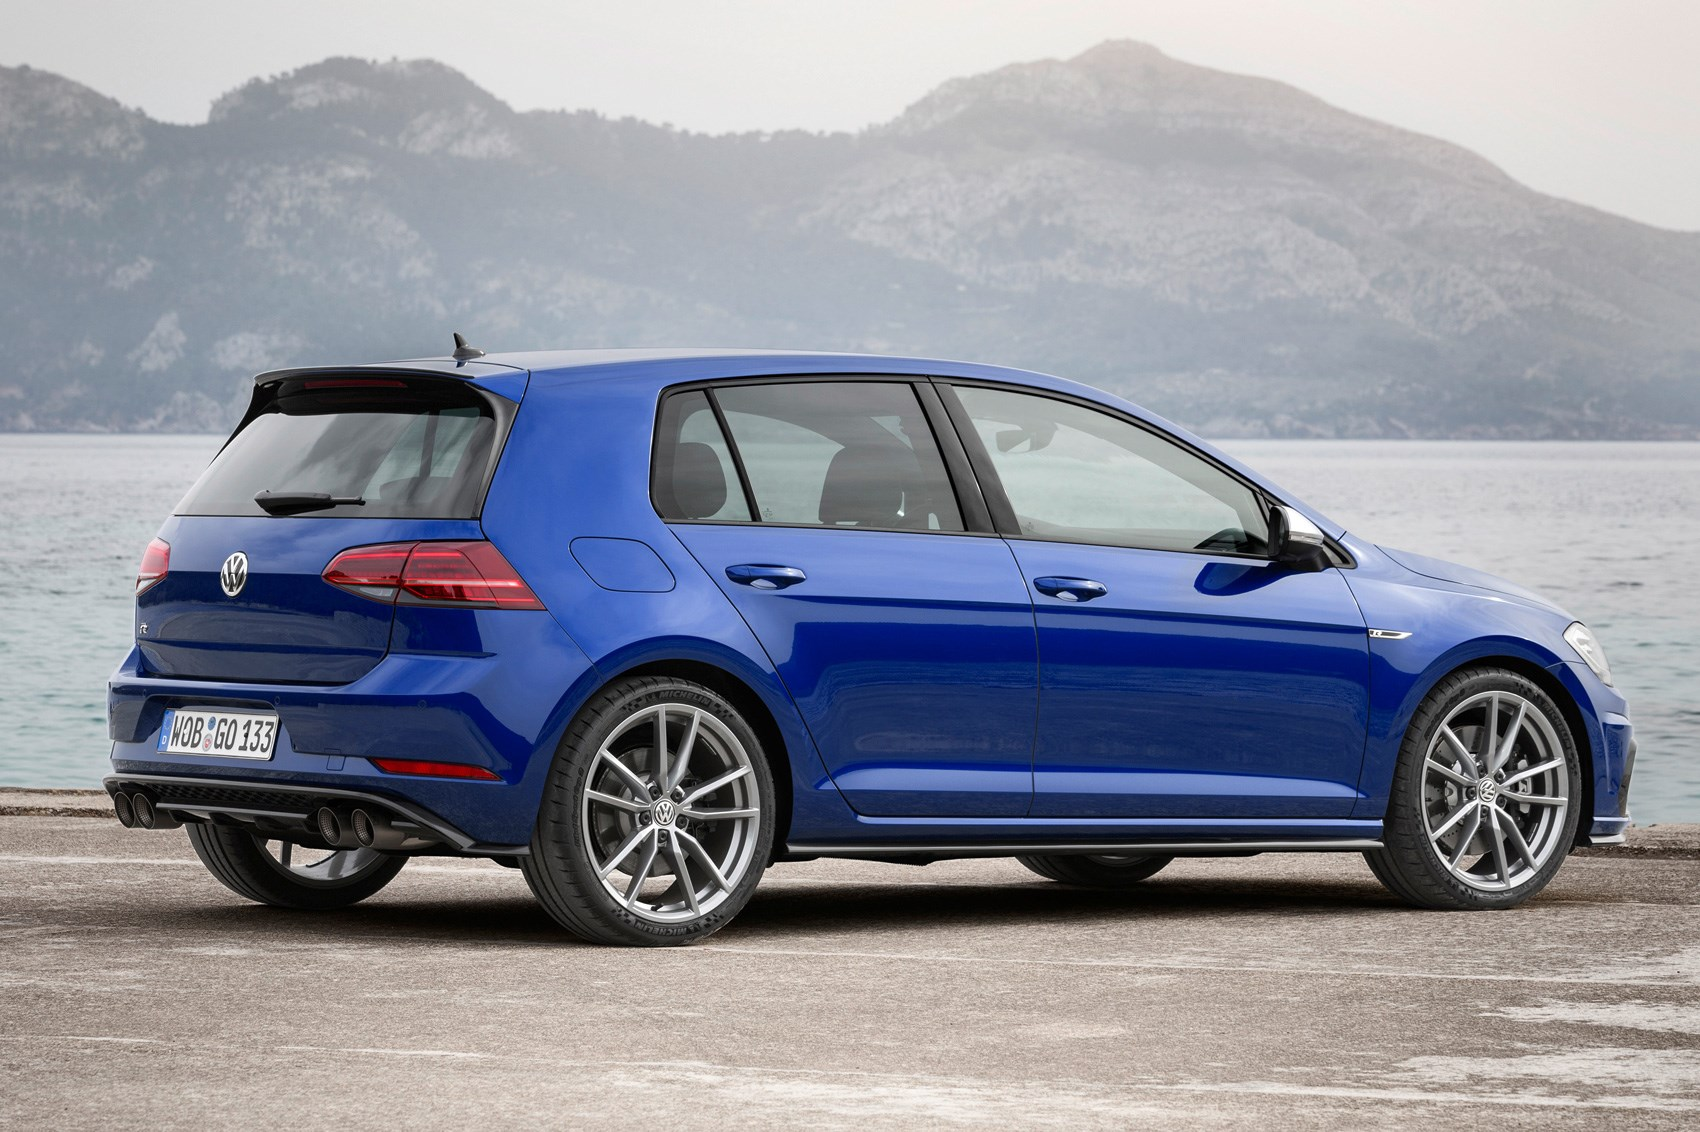 2017 Golf R For Sale >> Golf R Performance Pack: 200,000th hot hatch revealed | CAR Magazine